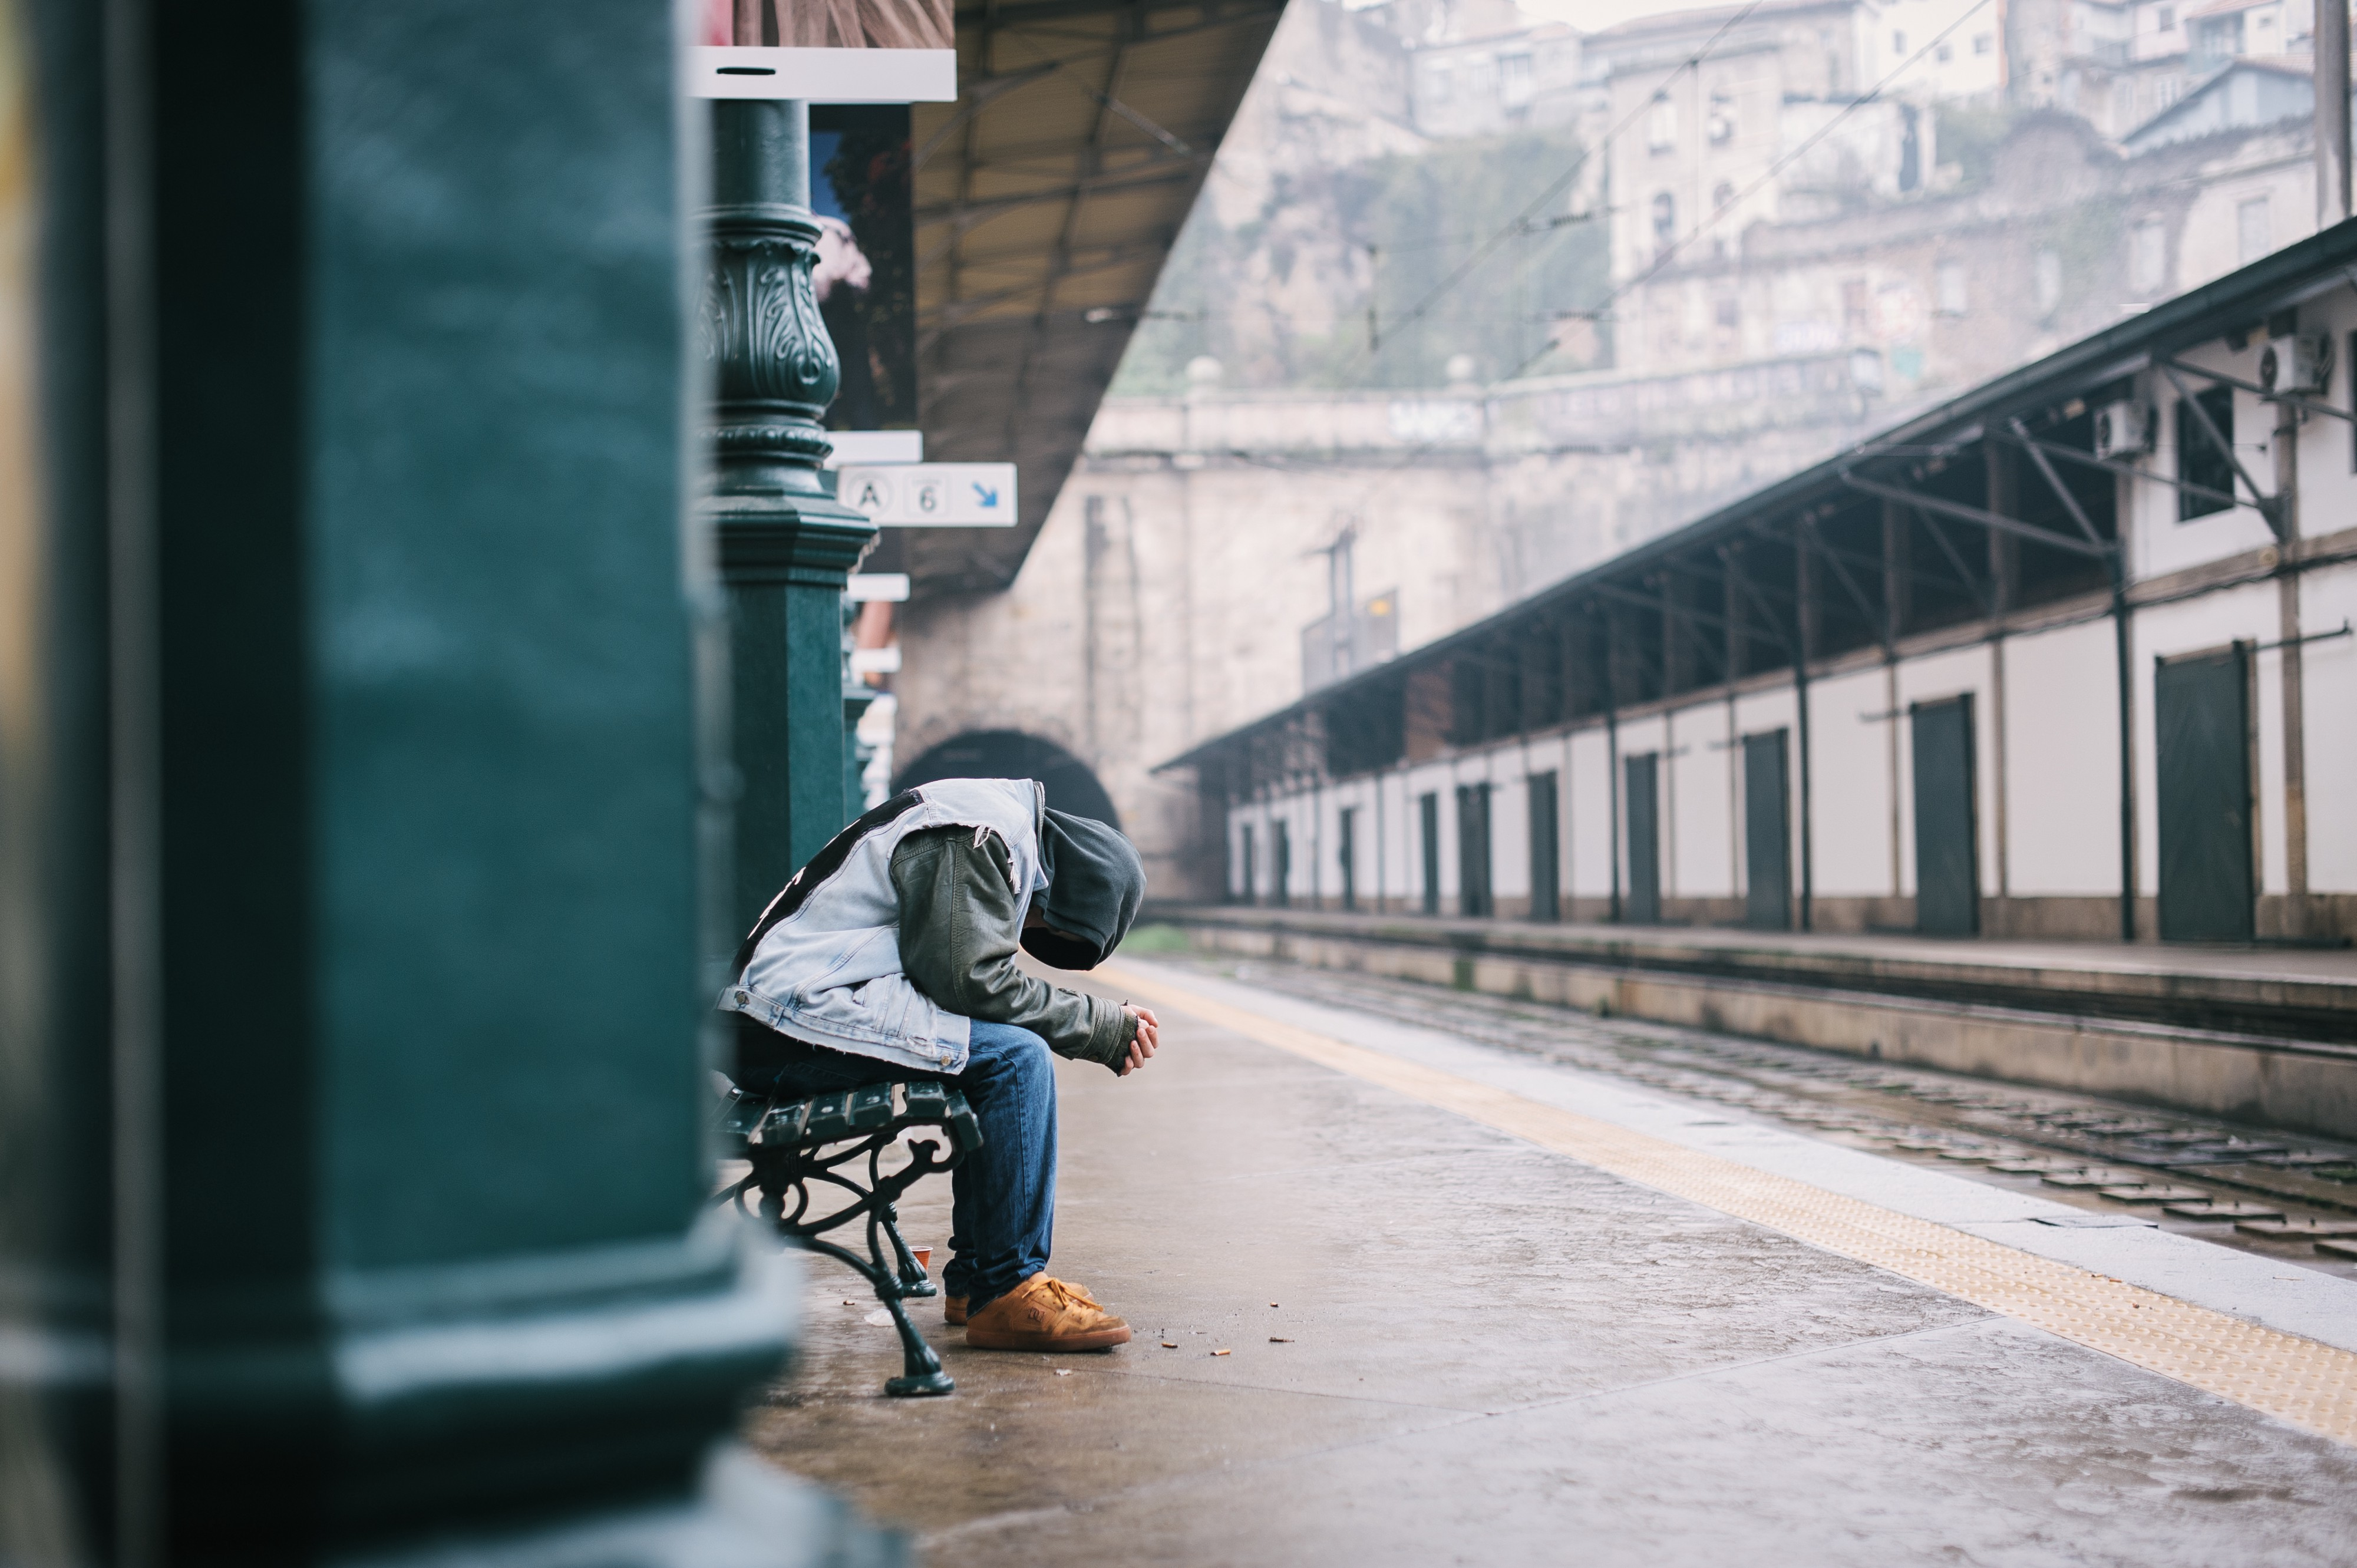 A man at an empty train station with his head bowed in what is presumed to be sadness.